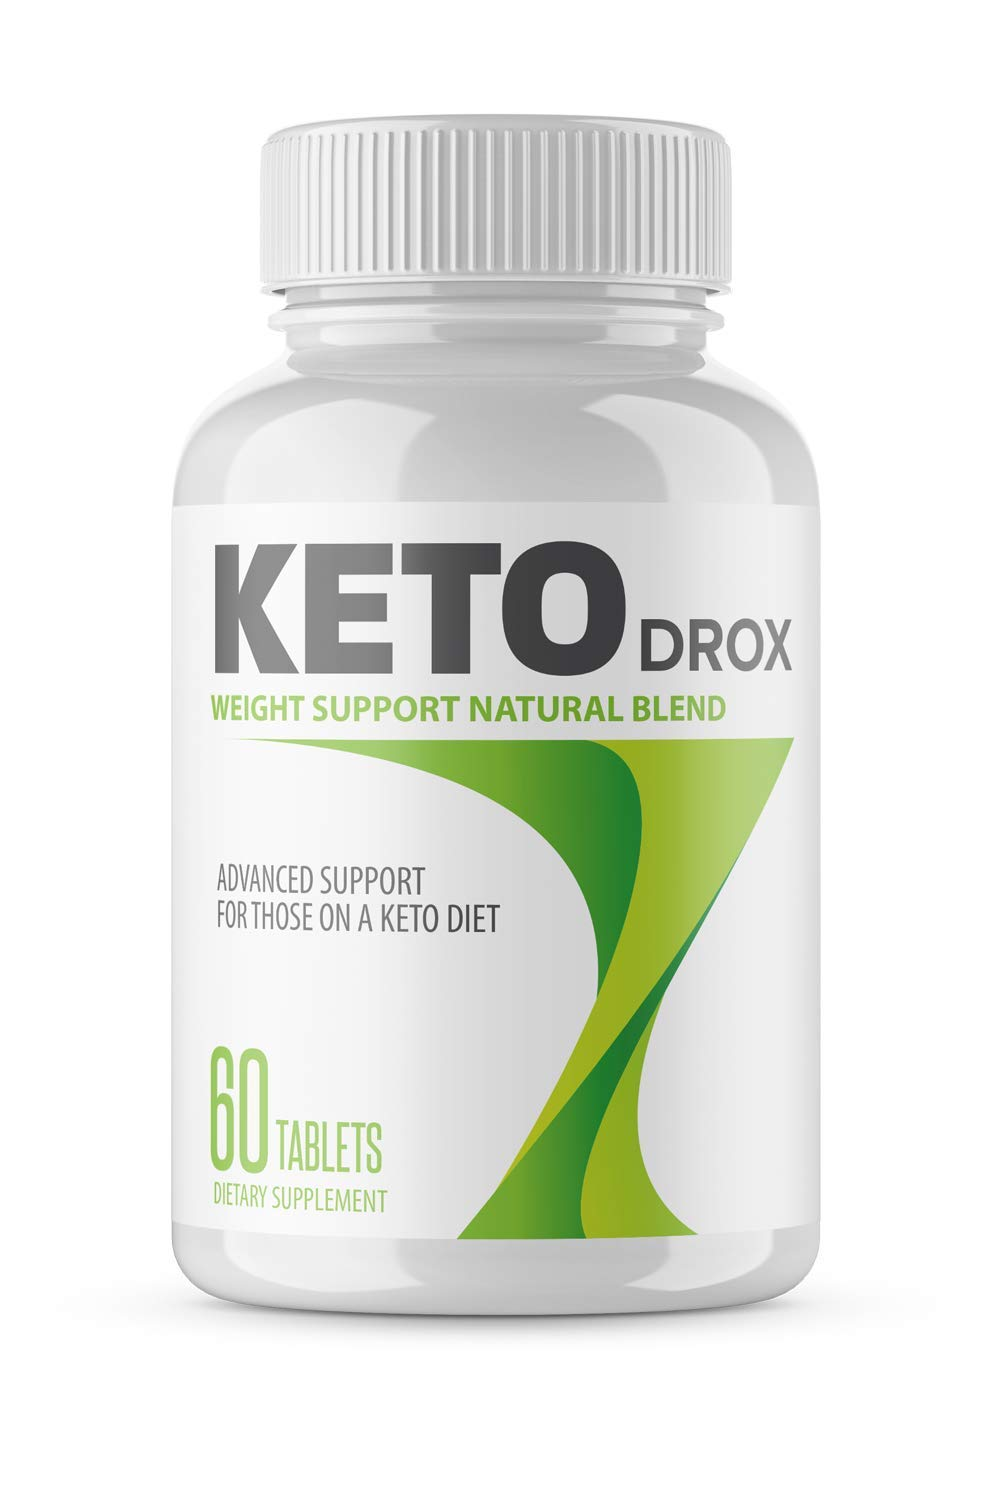 Ketodrox - Weight Support Raspberry Ketone Blend, Natural Appetite Suppressant- Made in USA